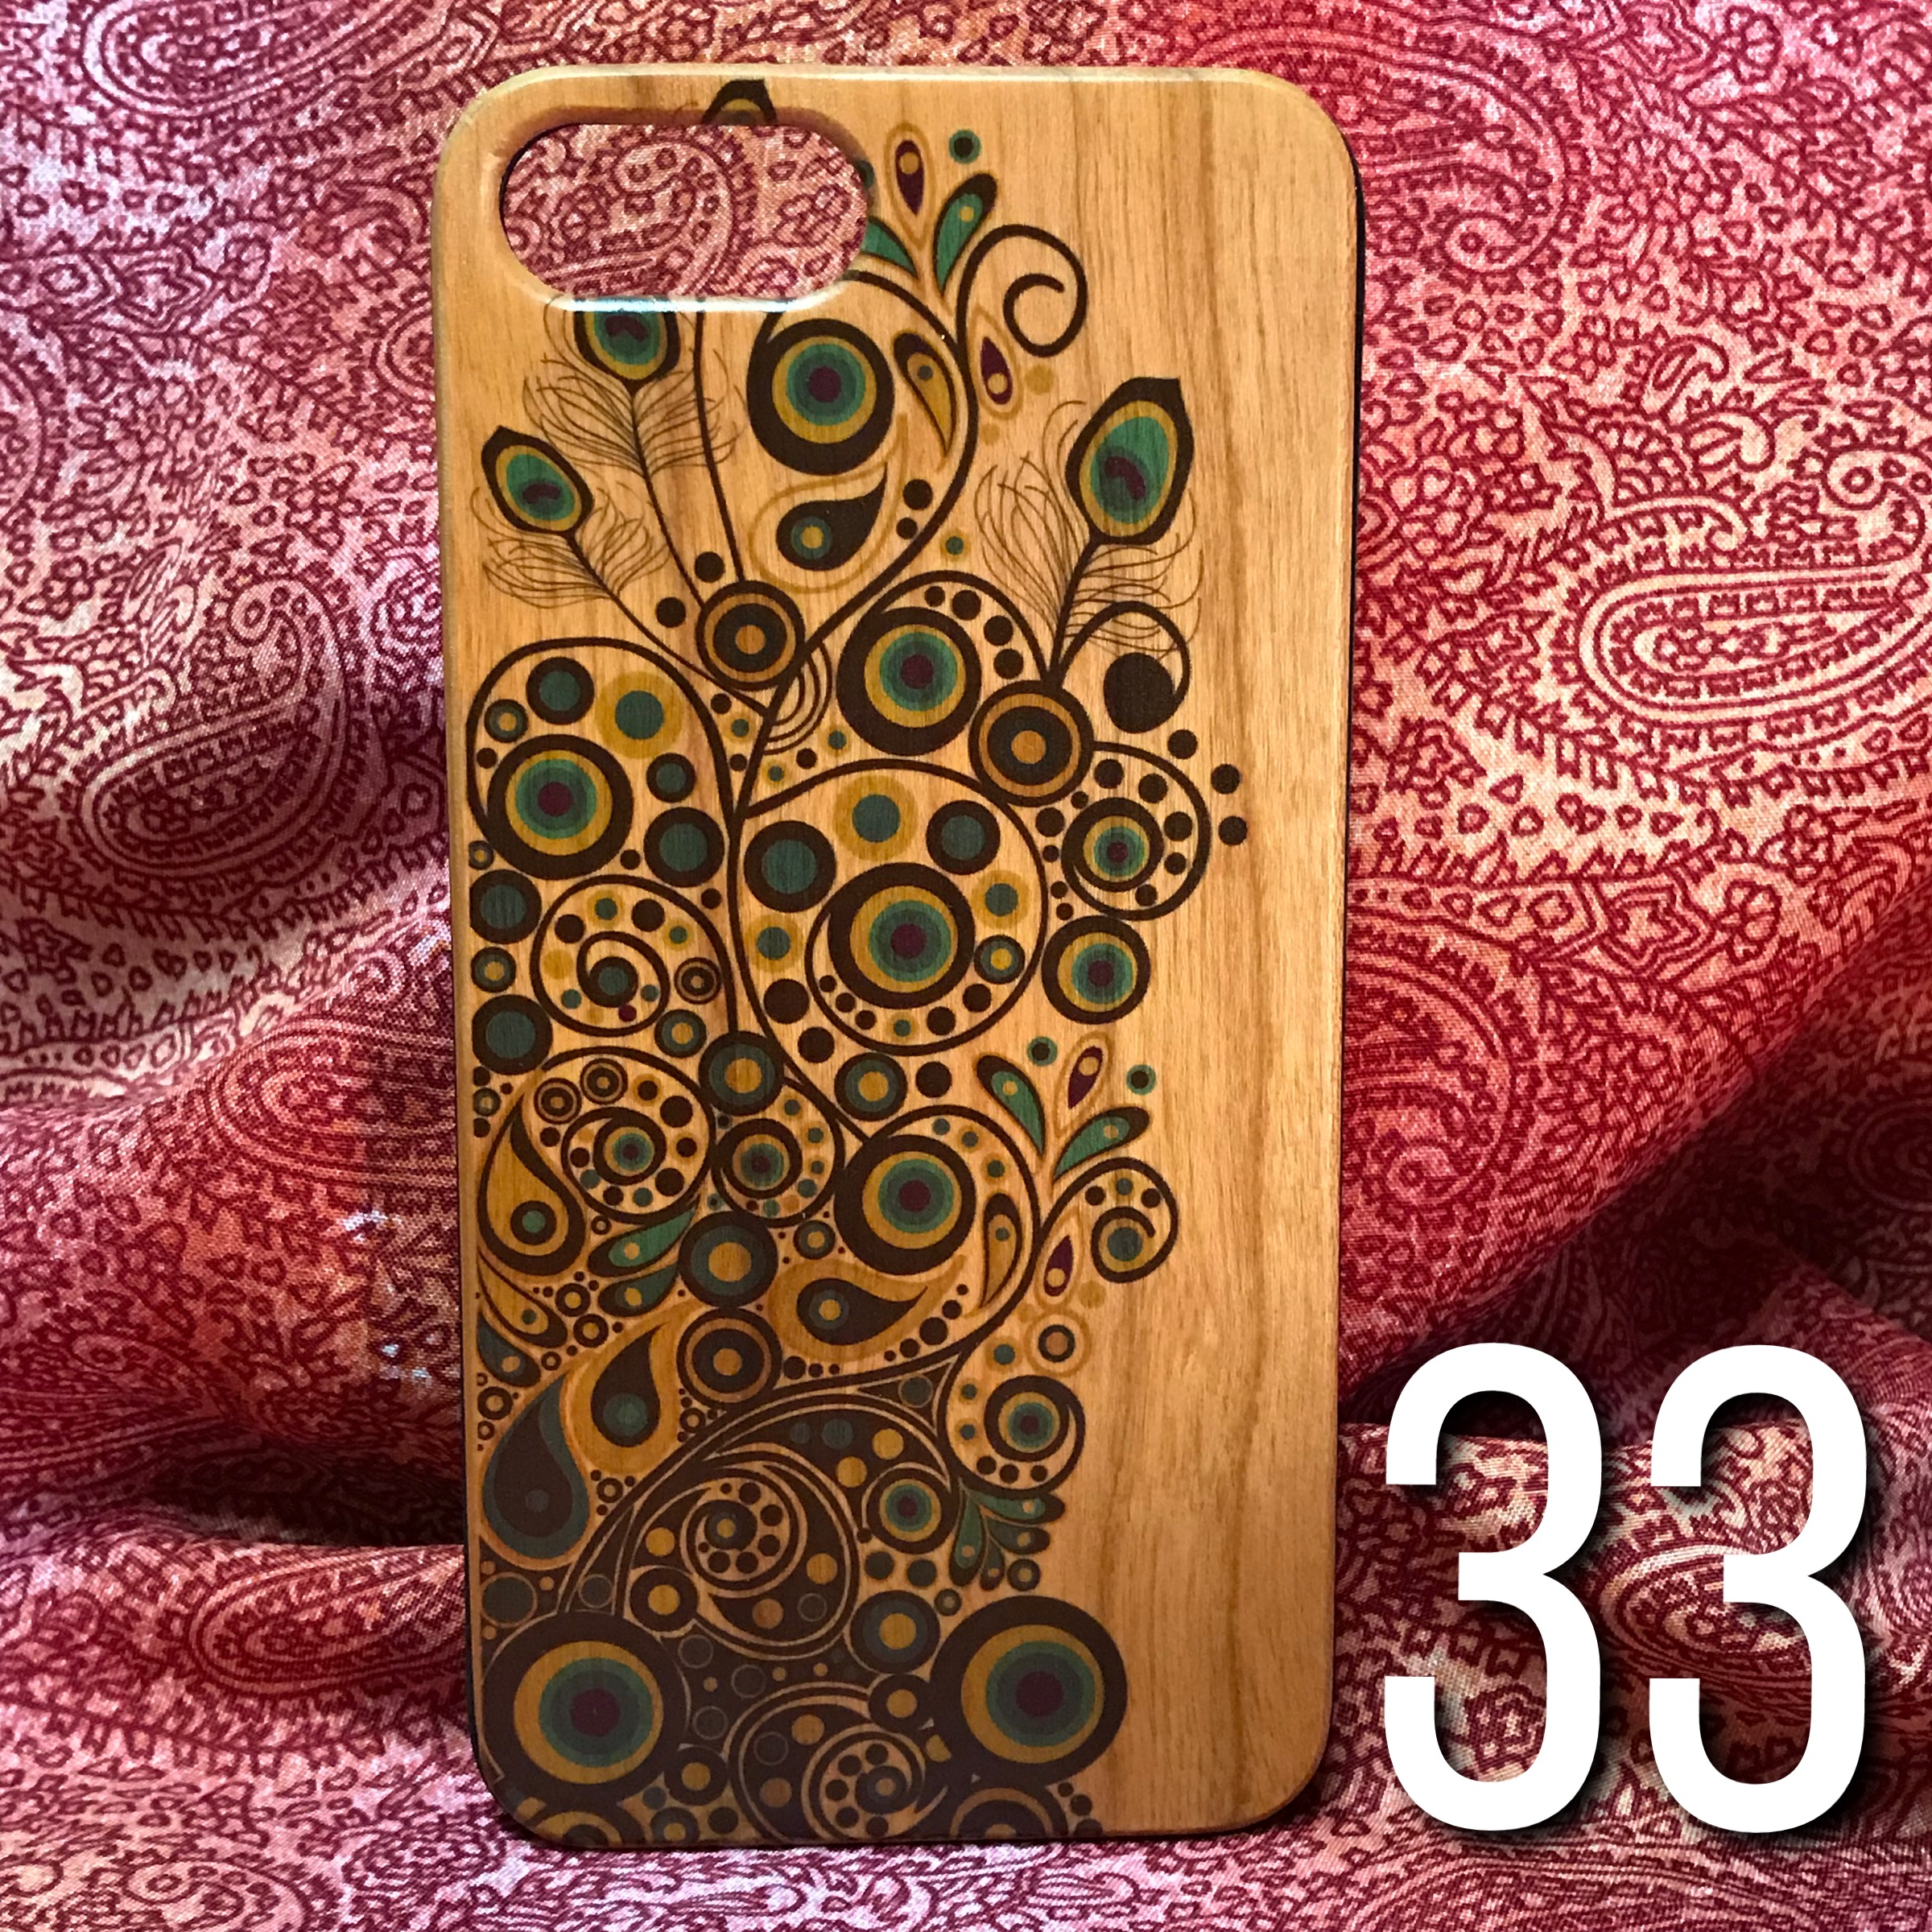 classic fit e168b c4148 iPhone 6+/7+ Phone Case - Funky Peacock Feathers (33-36) from Monsoon Varsha